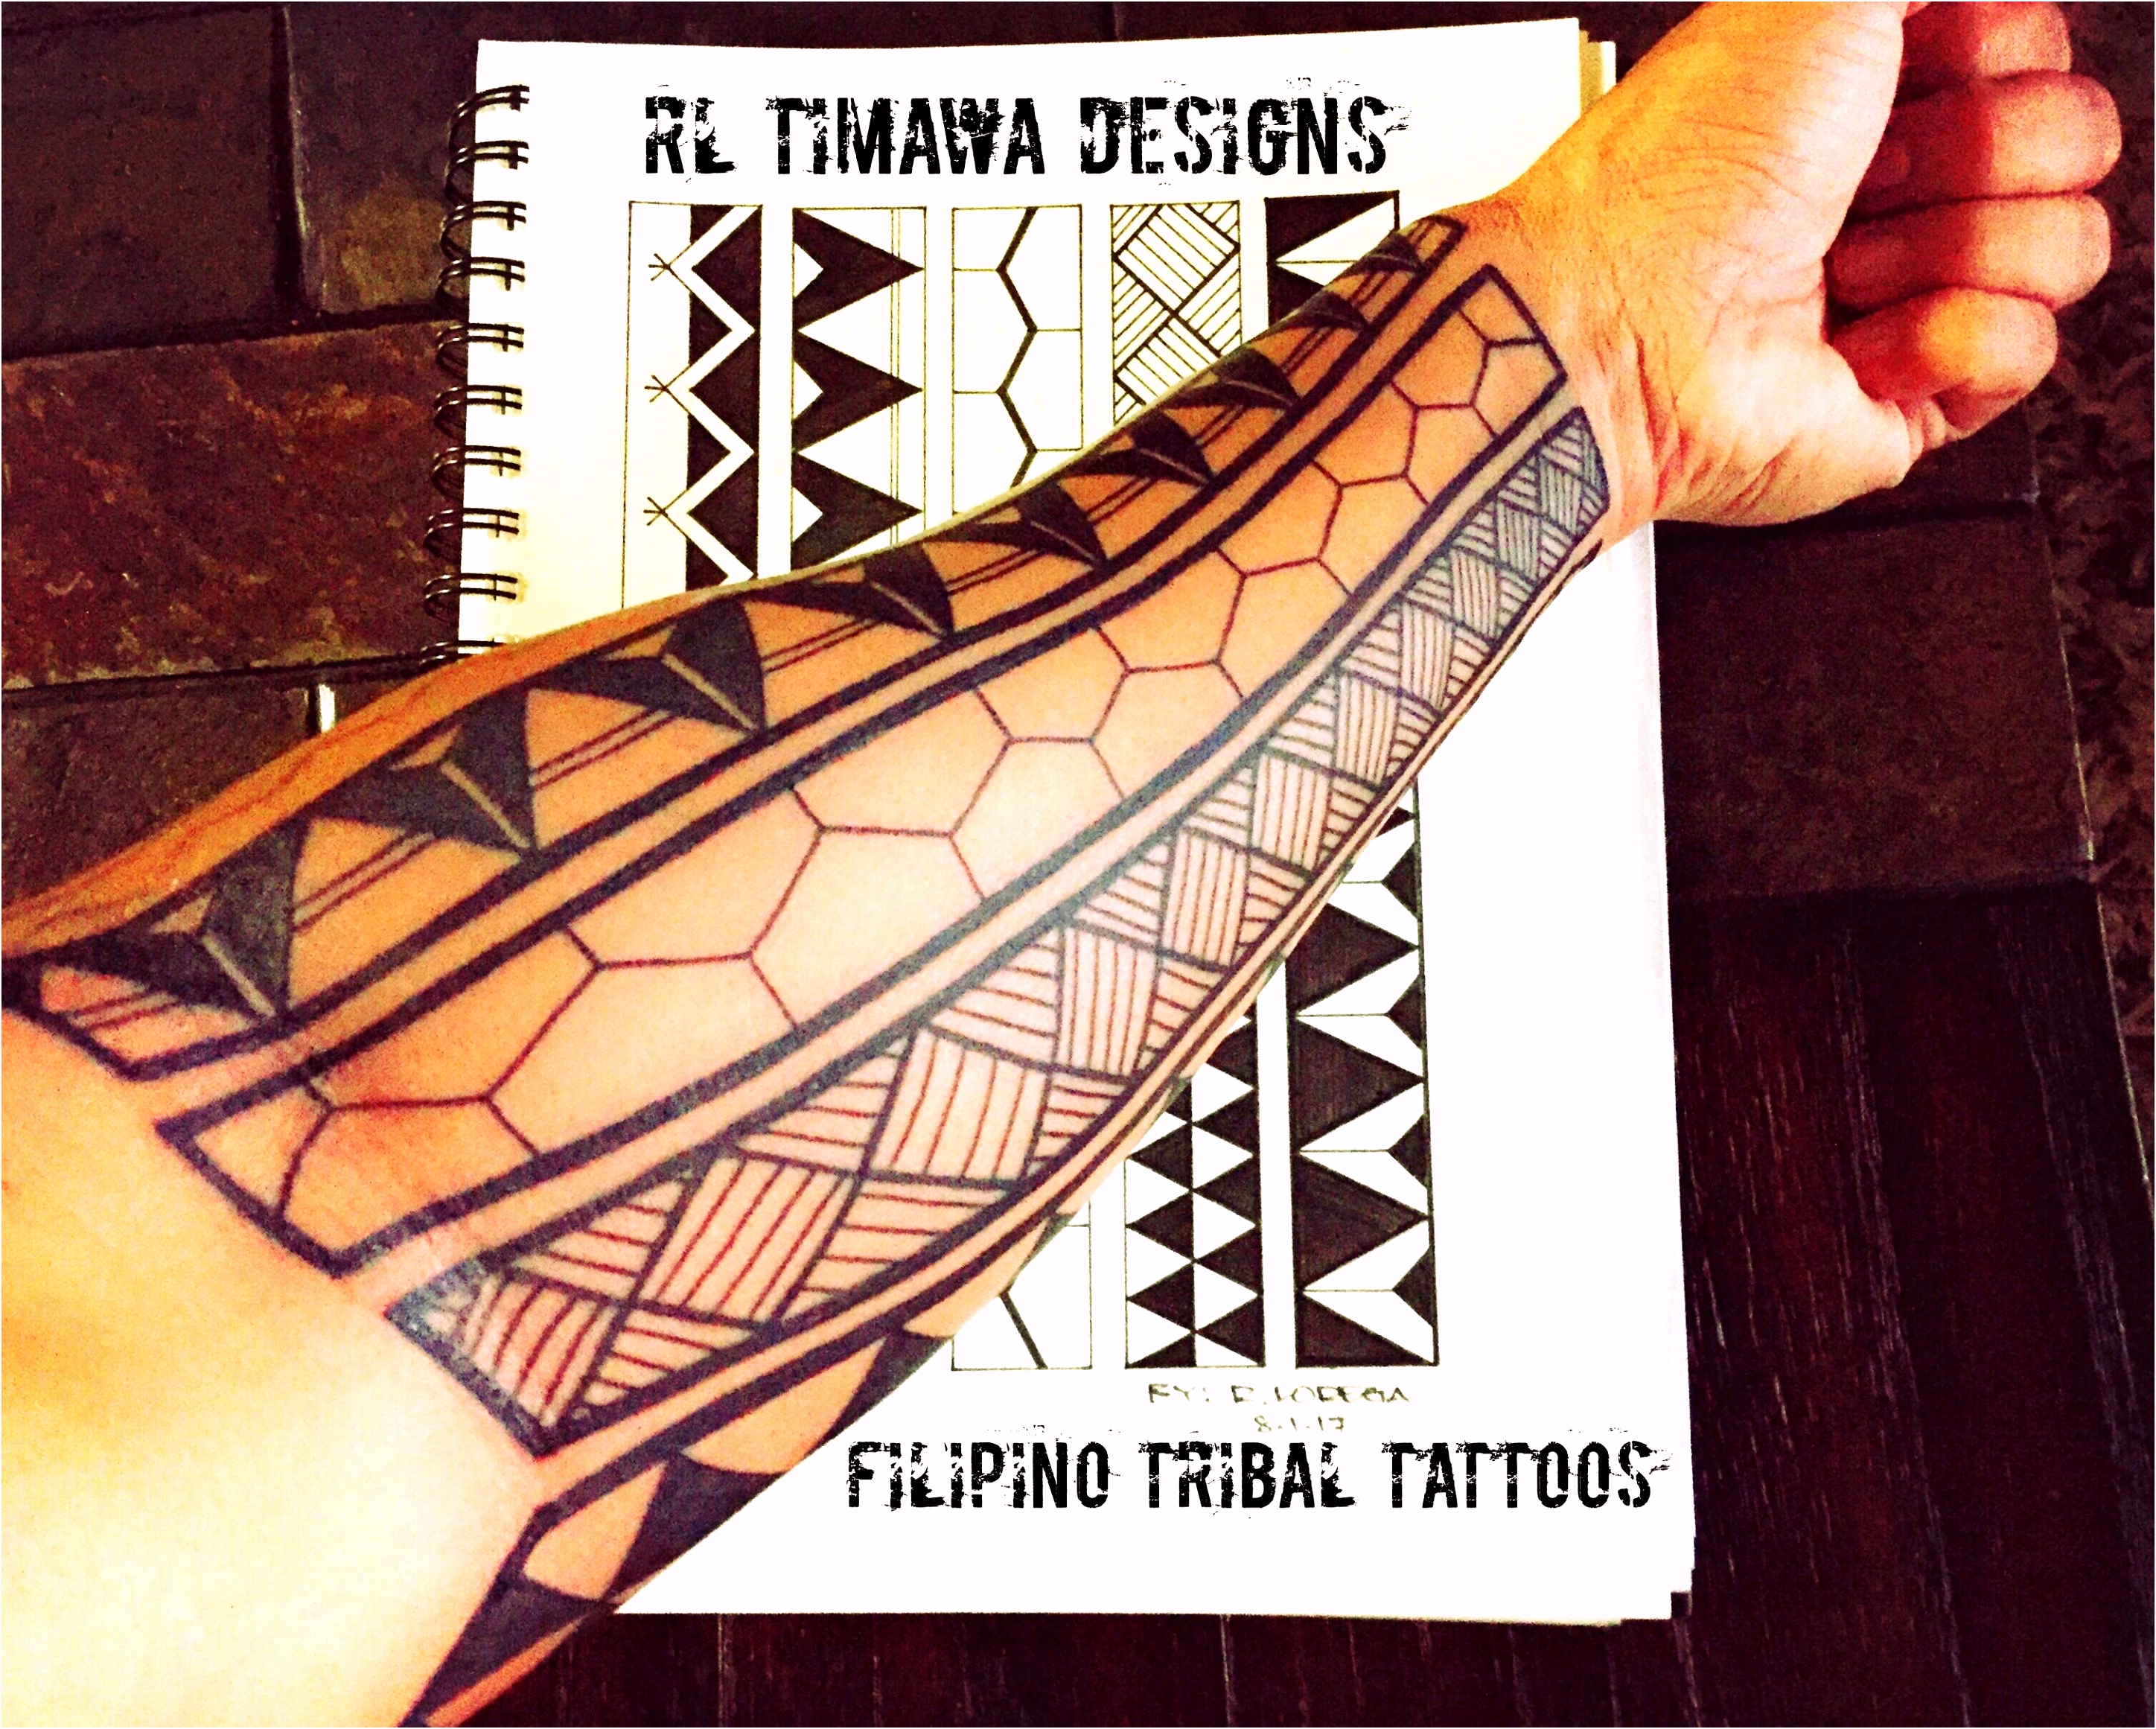 Tattoos Tribal Tattoo Armband Superb Maori Tattoo Vorlagen Tribal